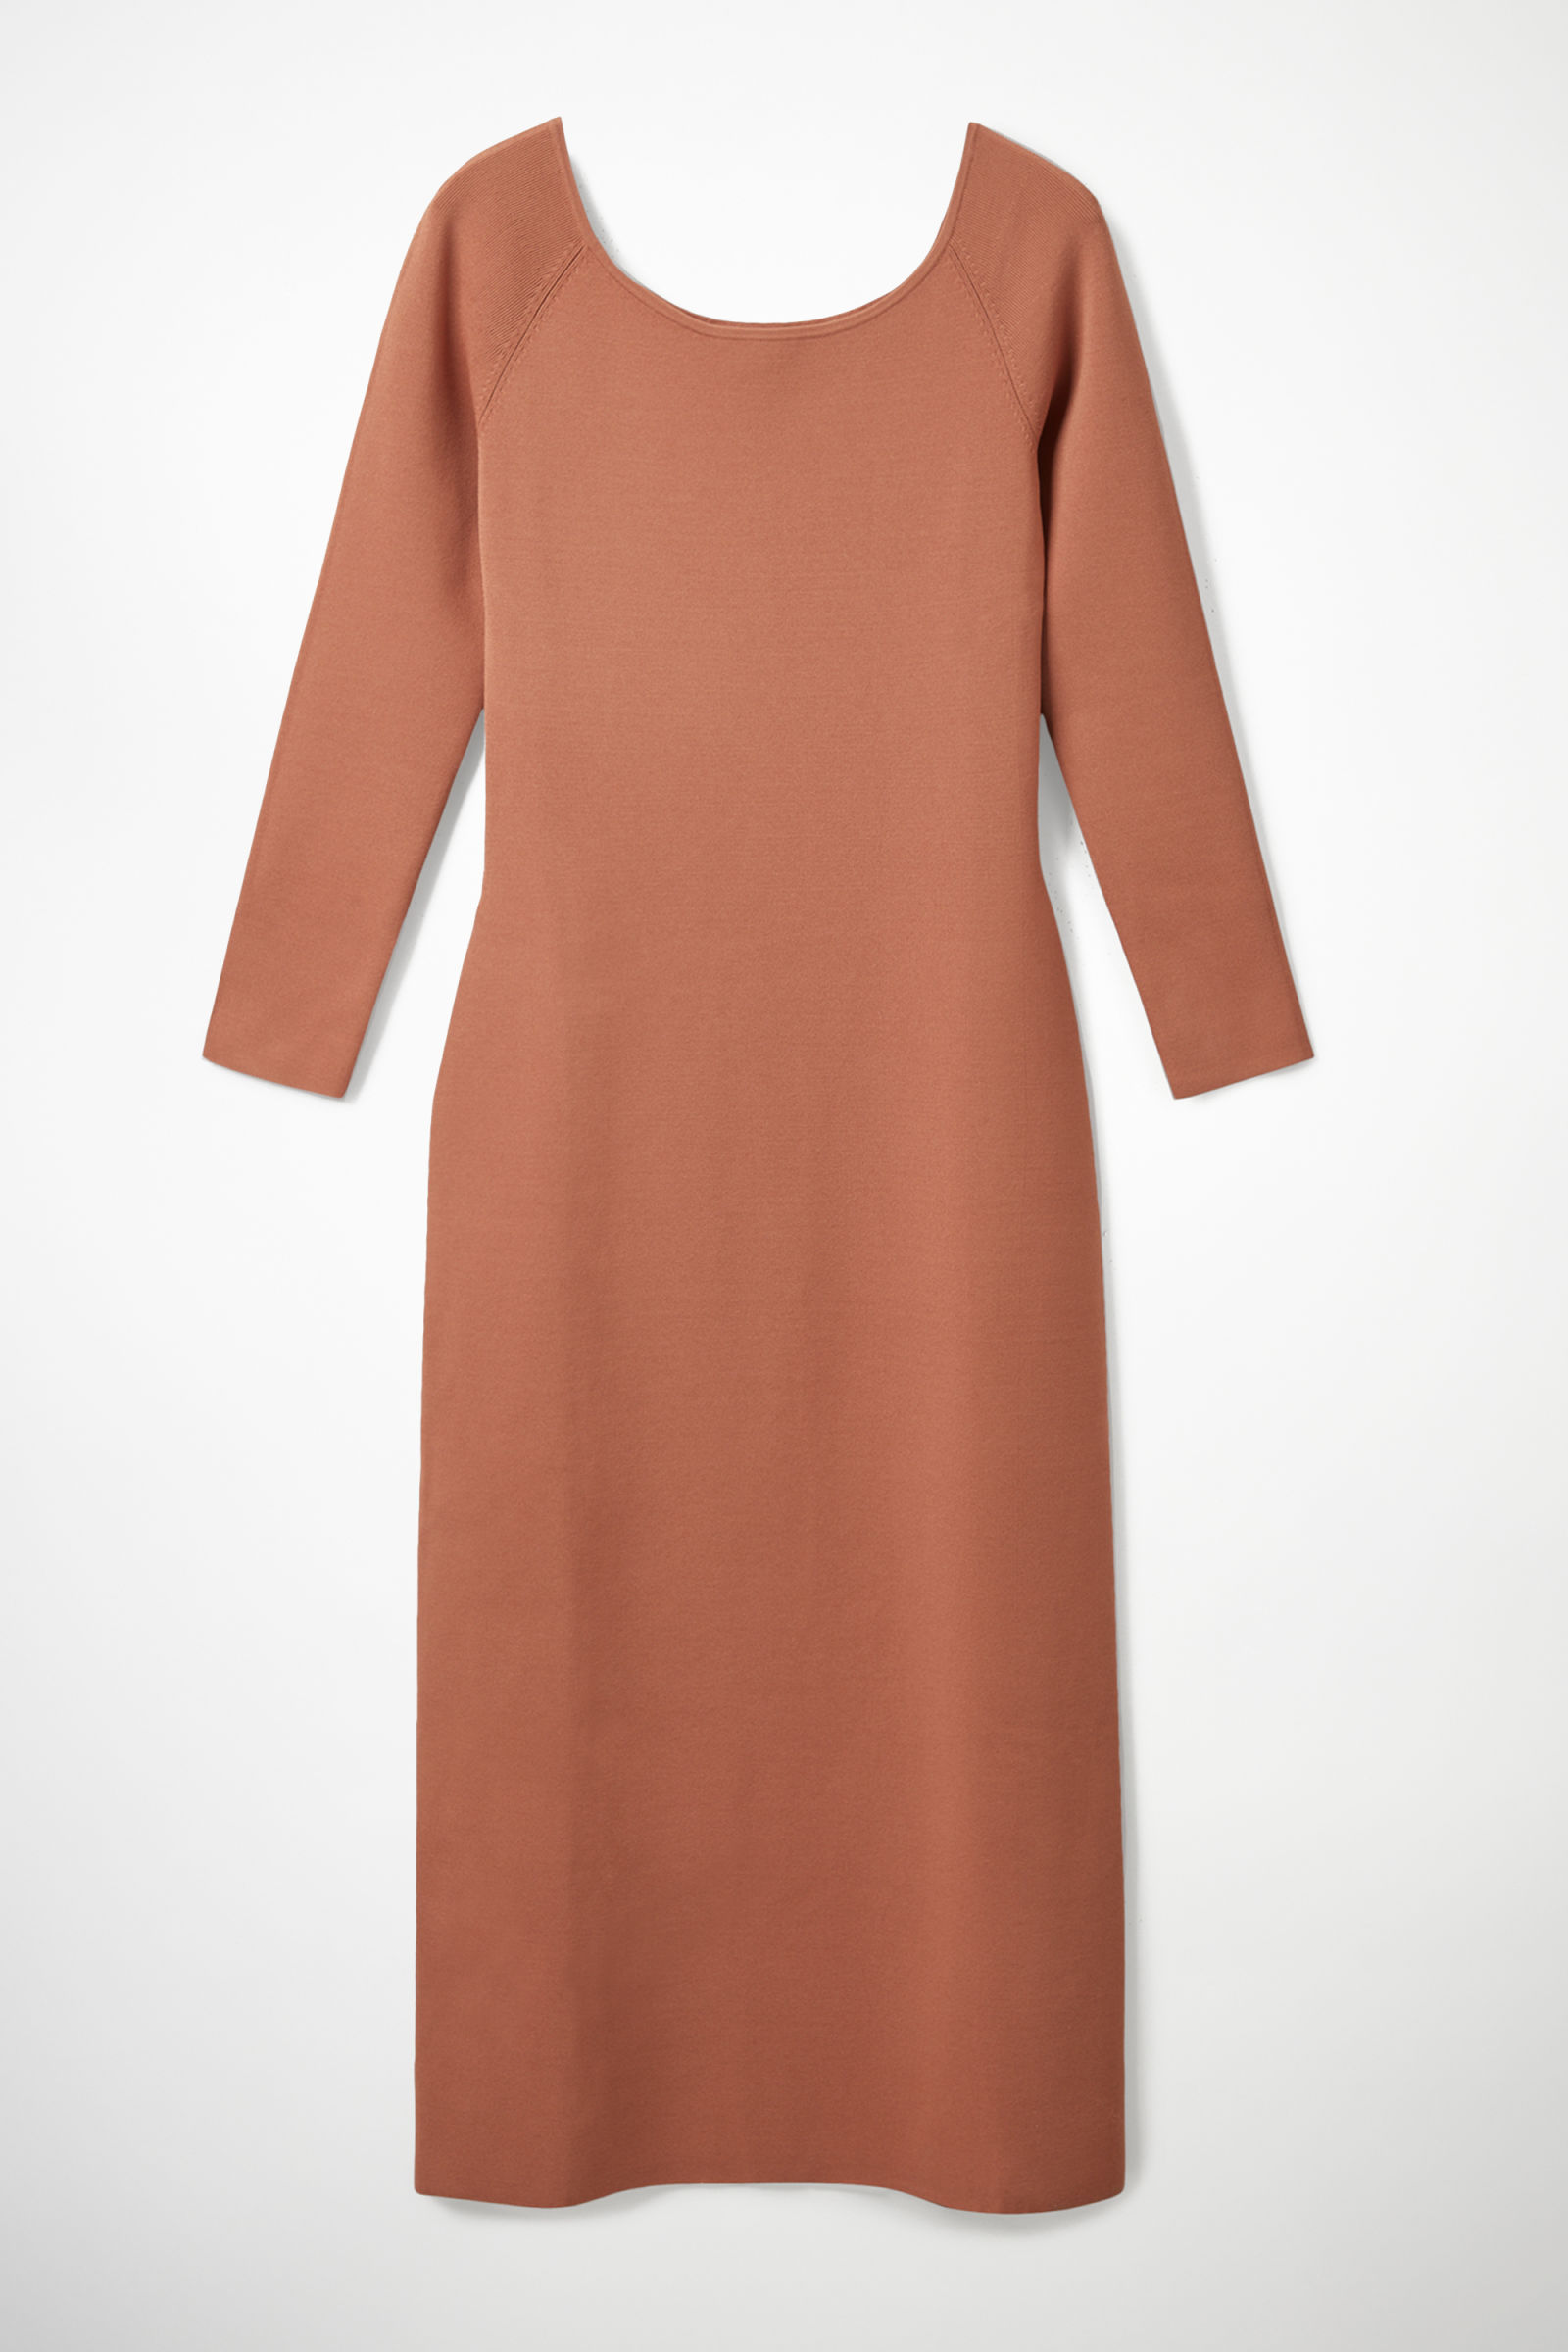 KNITTED OFF-SHOULDER TUBE DRESS - Peach - Dresses - COS US